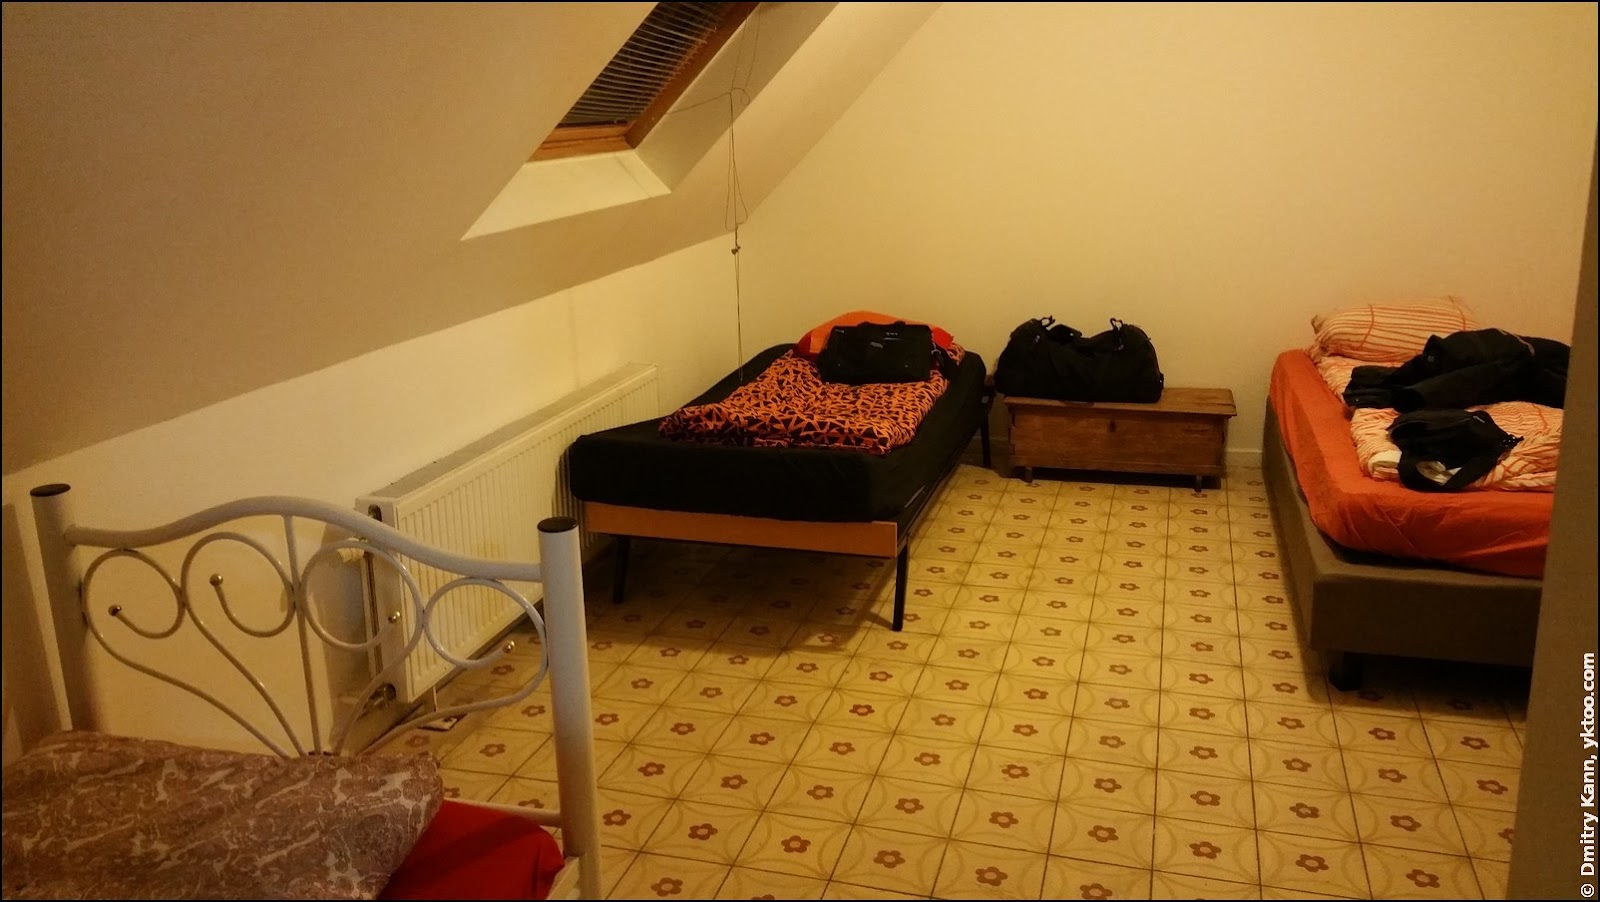 Our hotel room in Brussels.